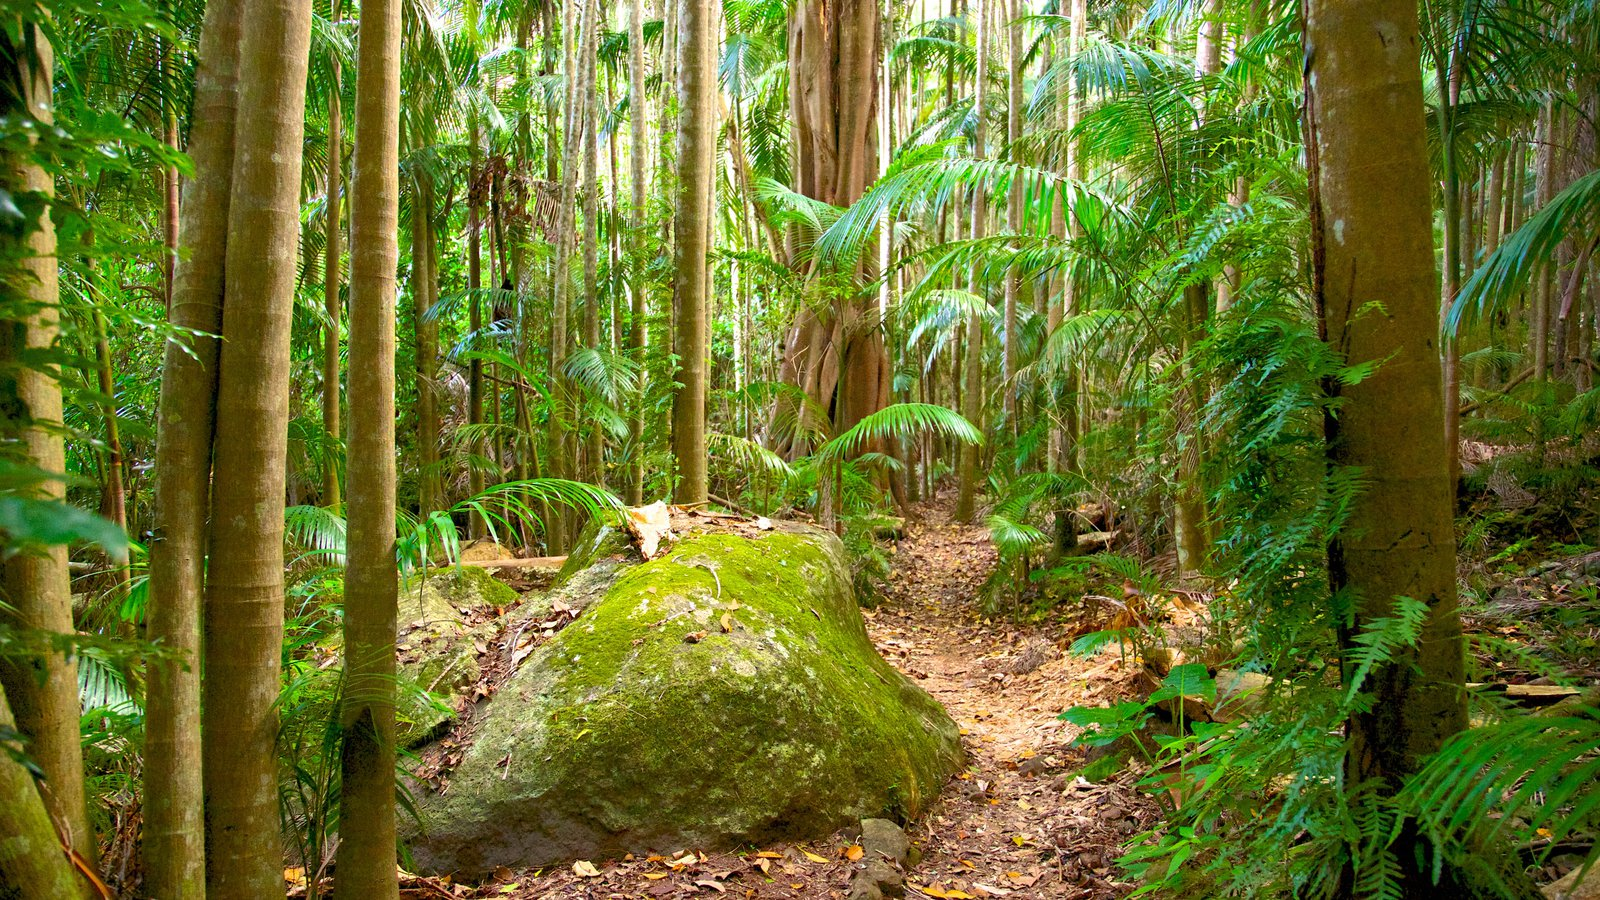 Tamborine National Park Palm Grove Section which includes forest scenes